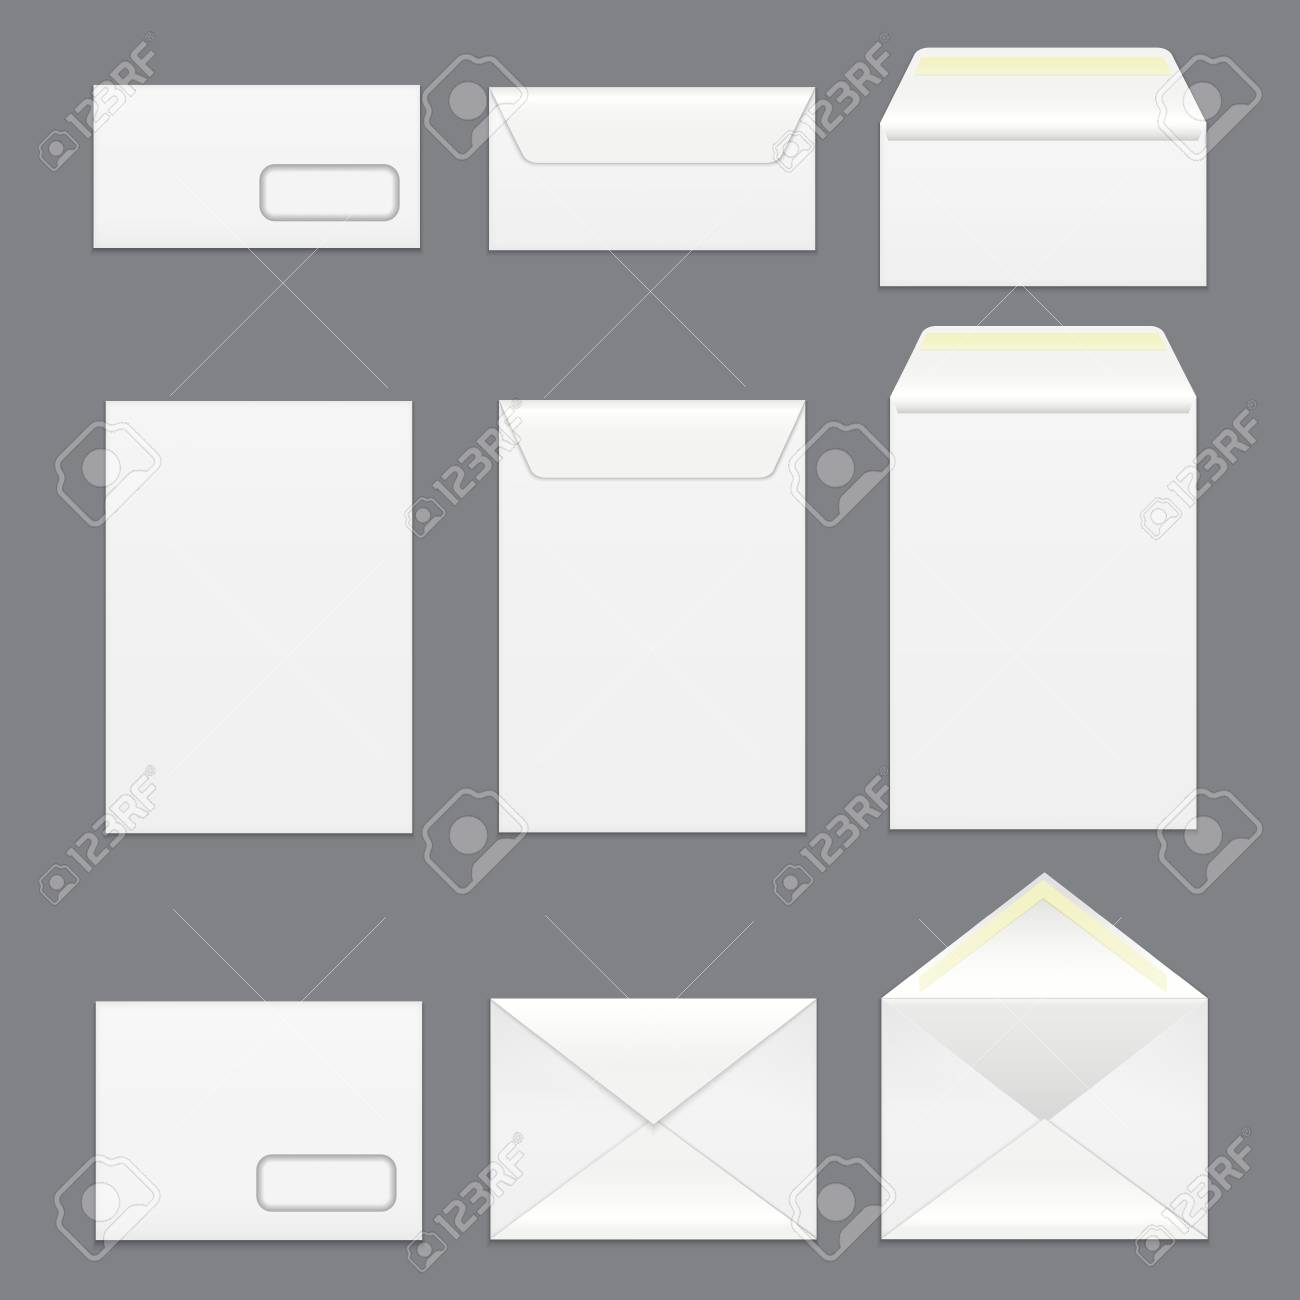 realistic detailed 3d white blank envelopes template mockup set